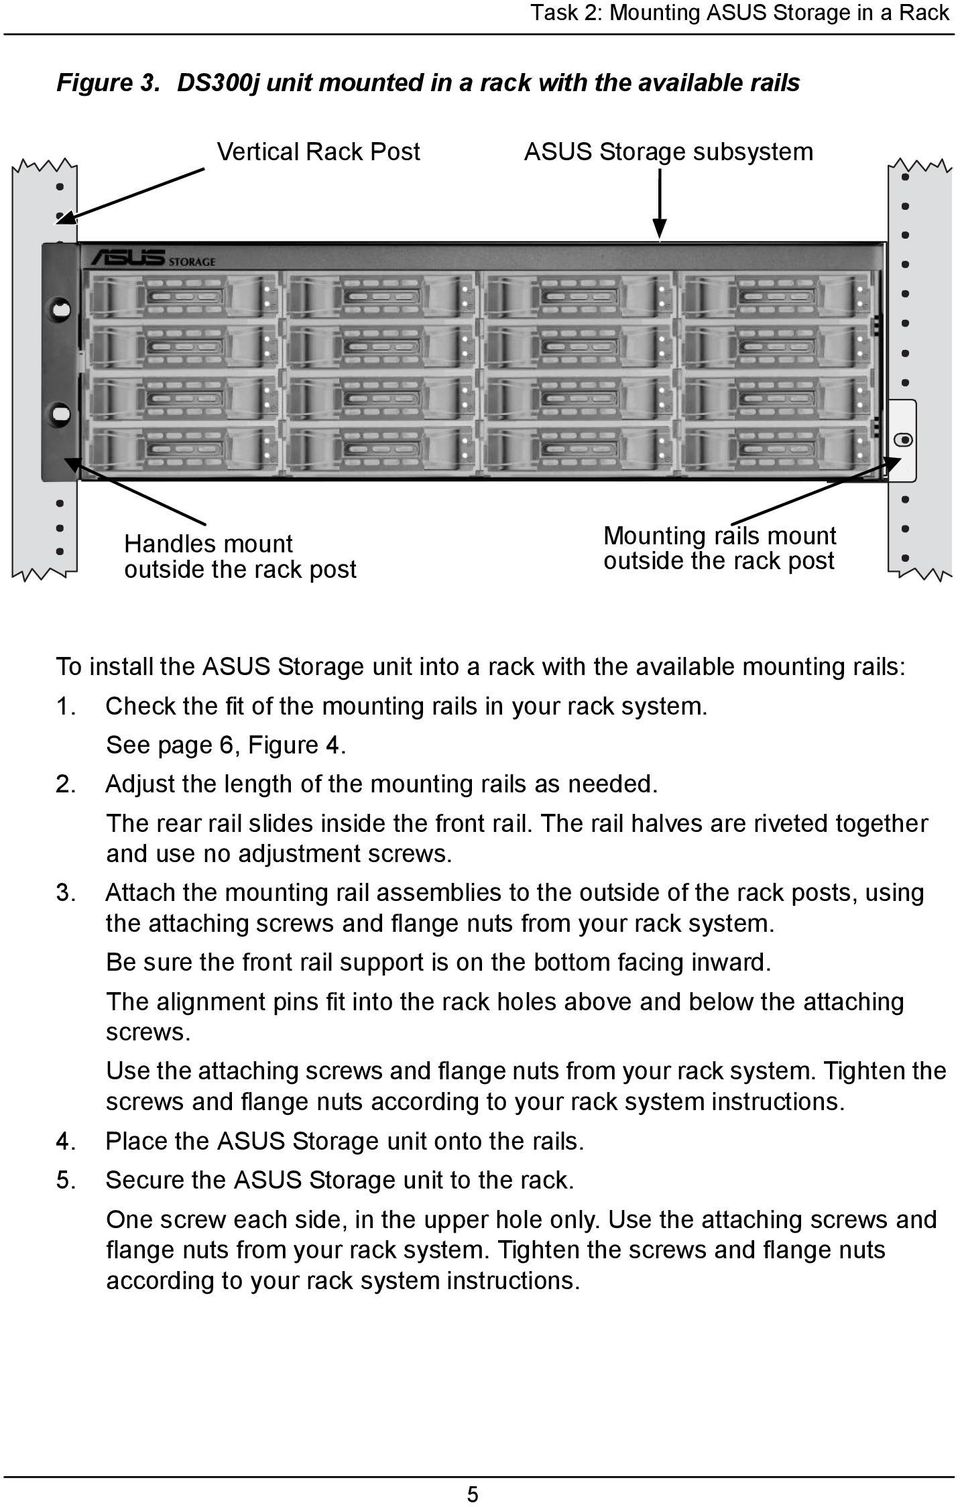 Storage unit into a rack with the available mounting rails: 1. Check the fit of the mounting rails in your rack system. See page 6, Figure 4. 2. Adjust the length of the mounting rails as needed.